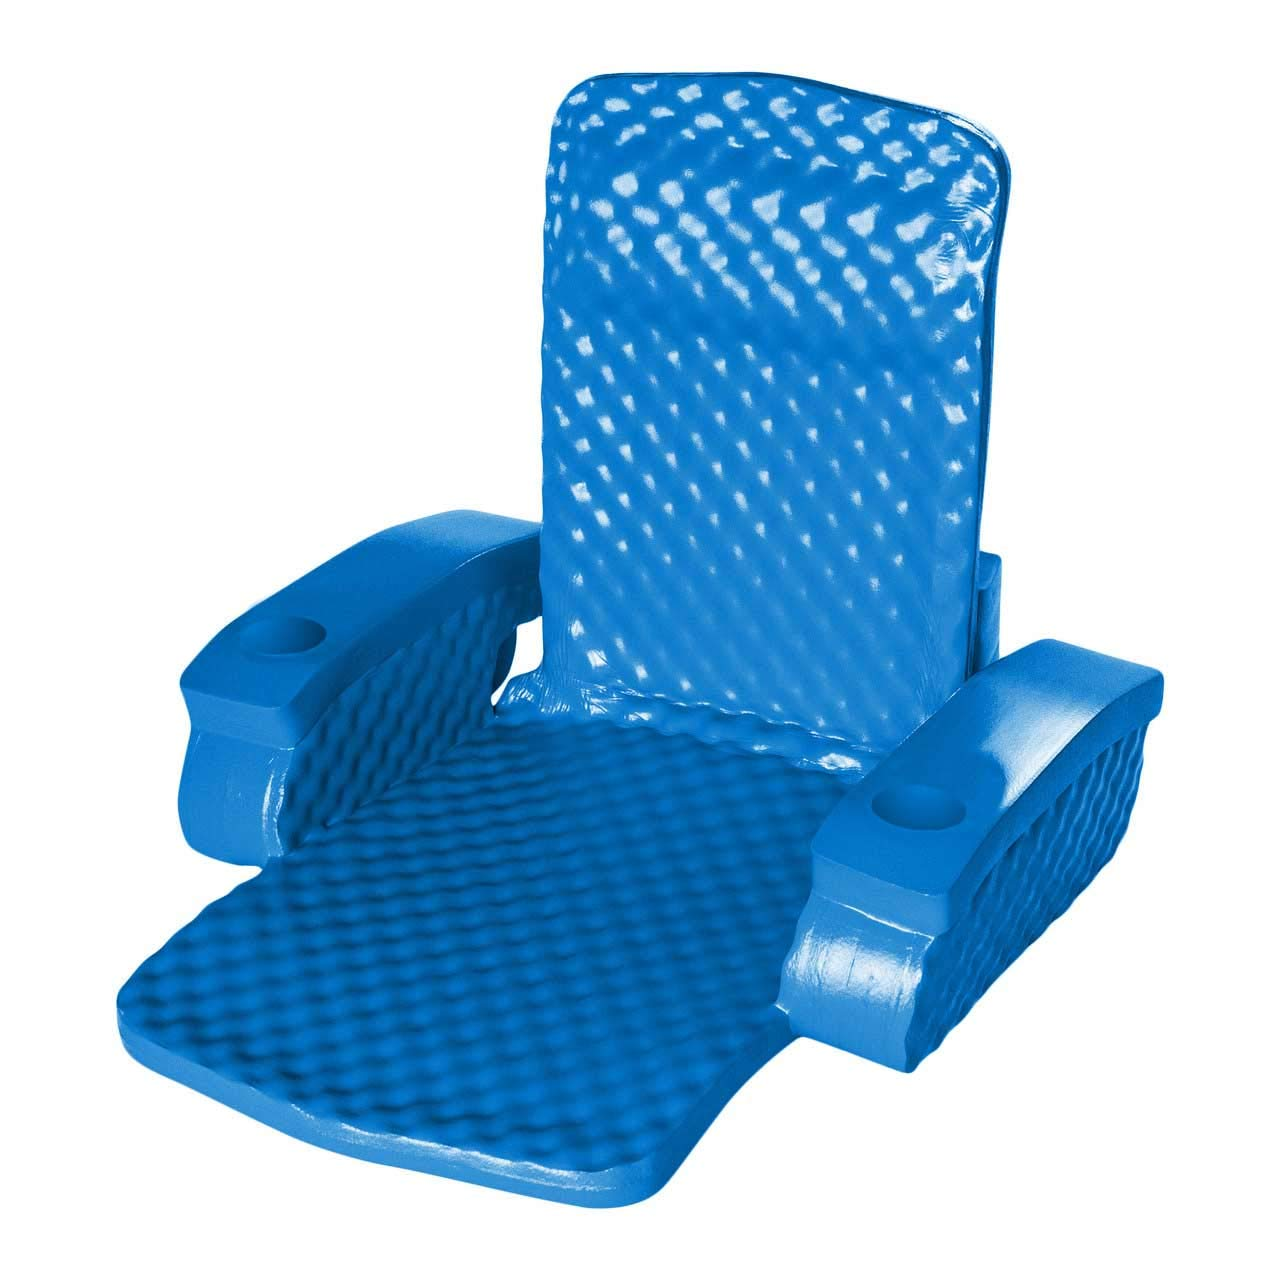 TRC Recreation Baja Folding Chair in Bahama Blue by Blue Wave (Image #5)